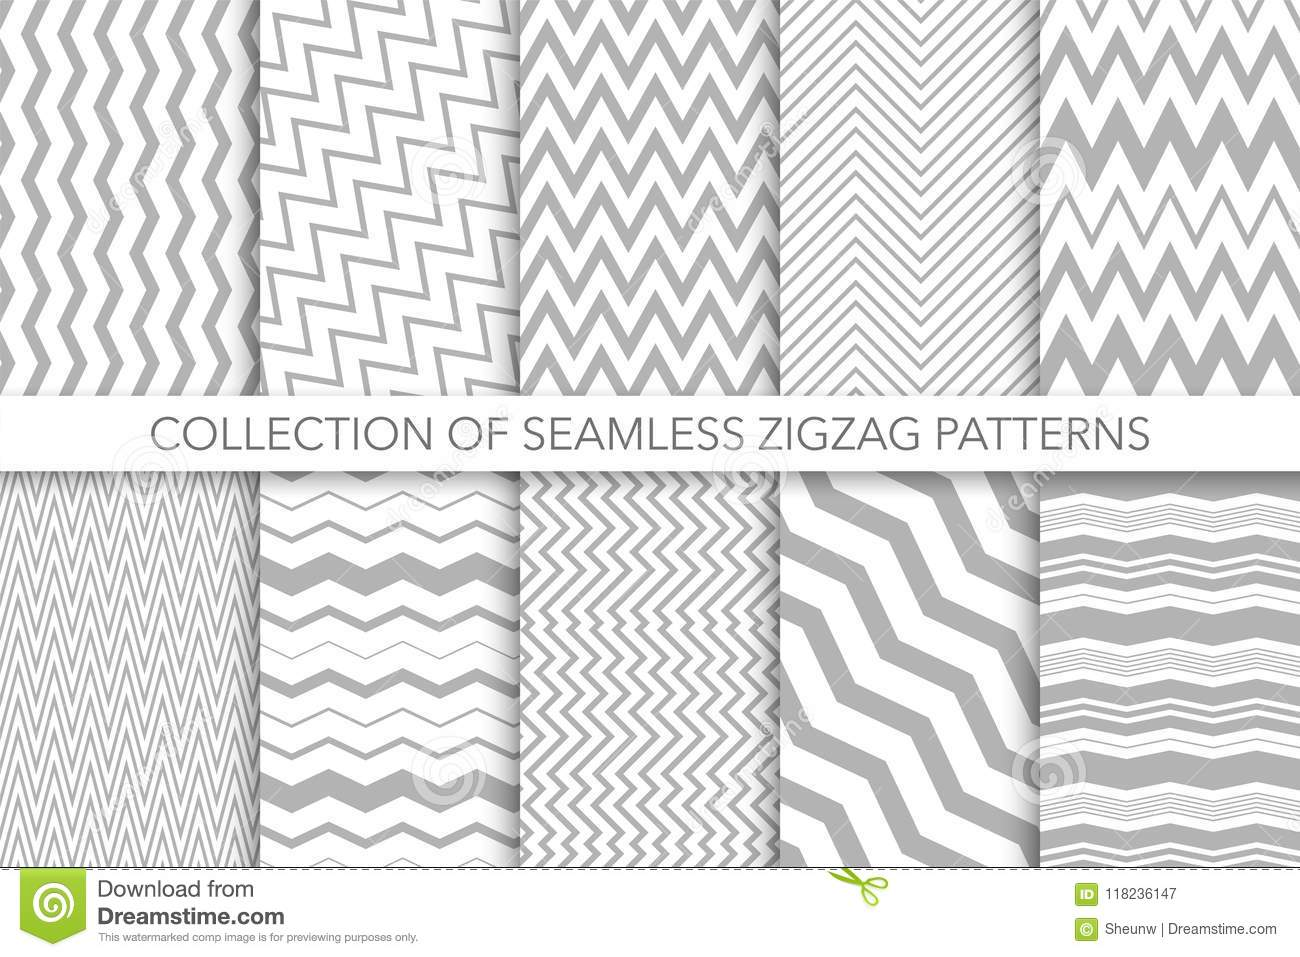 Collection of seamless zigzag patterns - vector geometric design. Classic striped textures.